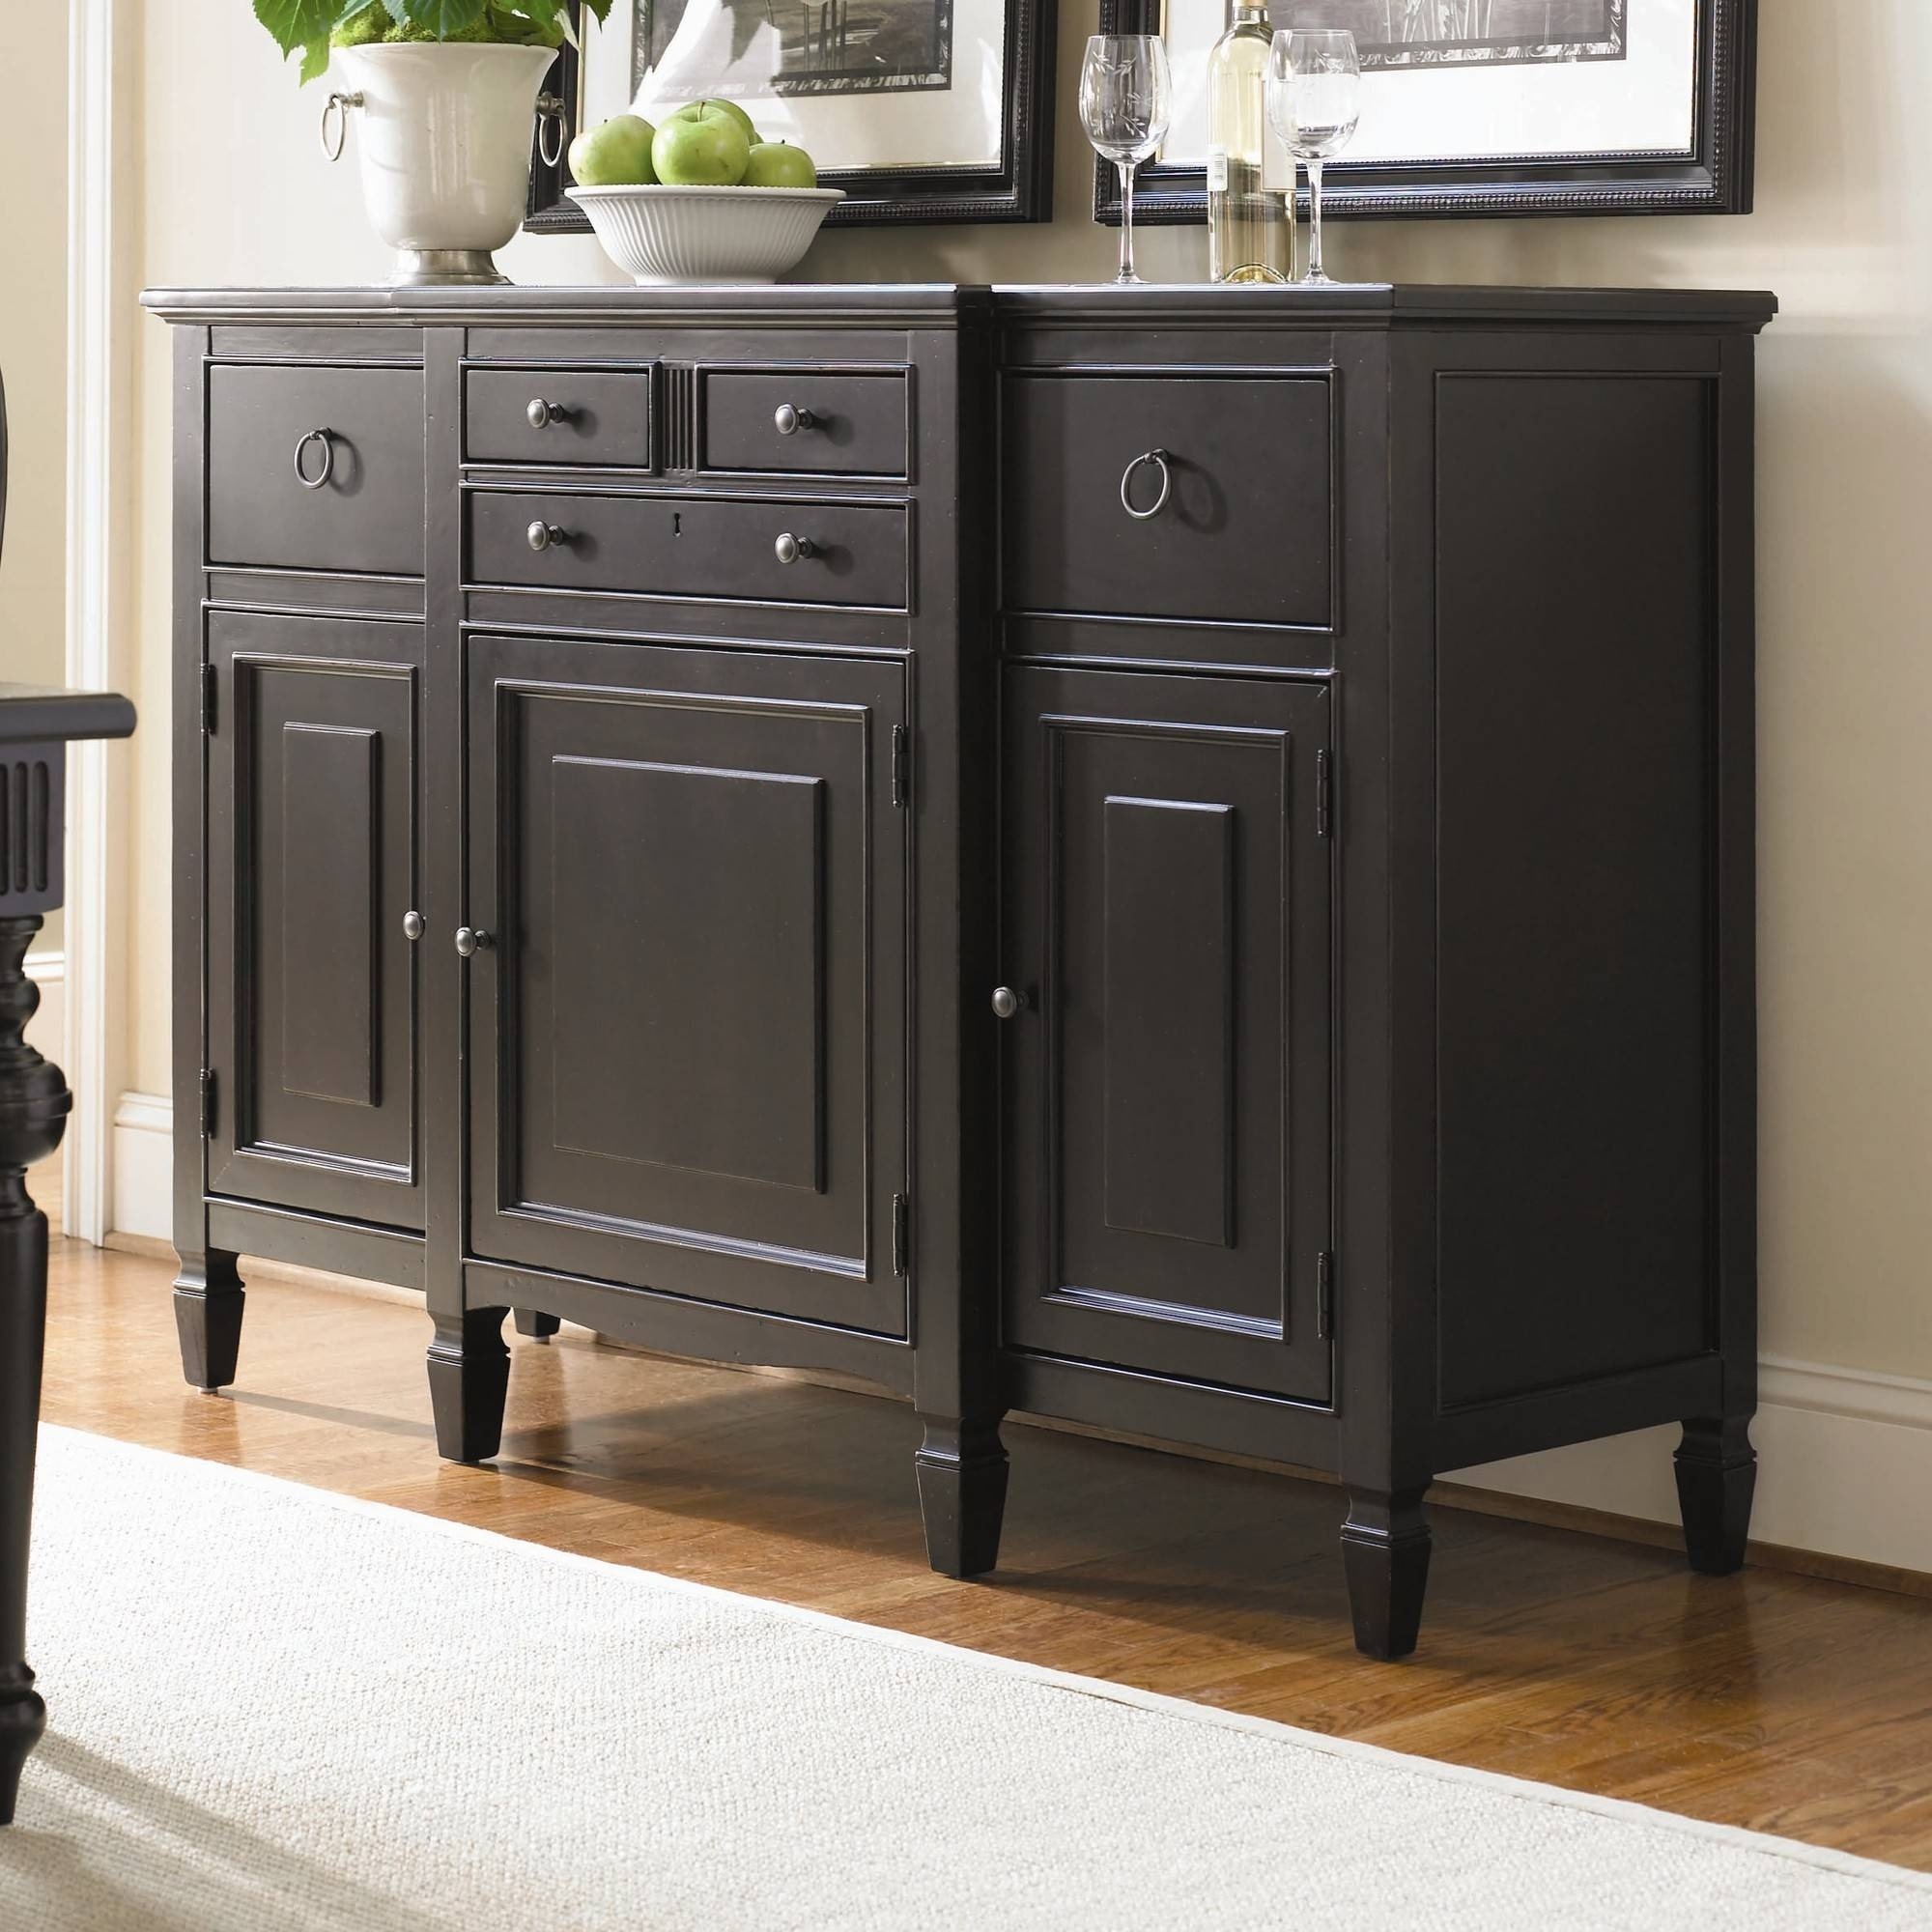 Dining Room Buffet Cabinet Sideboards Buffets Storage Servers 17 pertaining to Black Dining Room Sideboards (Image 5 of 15)